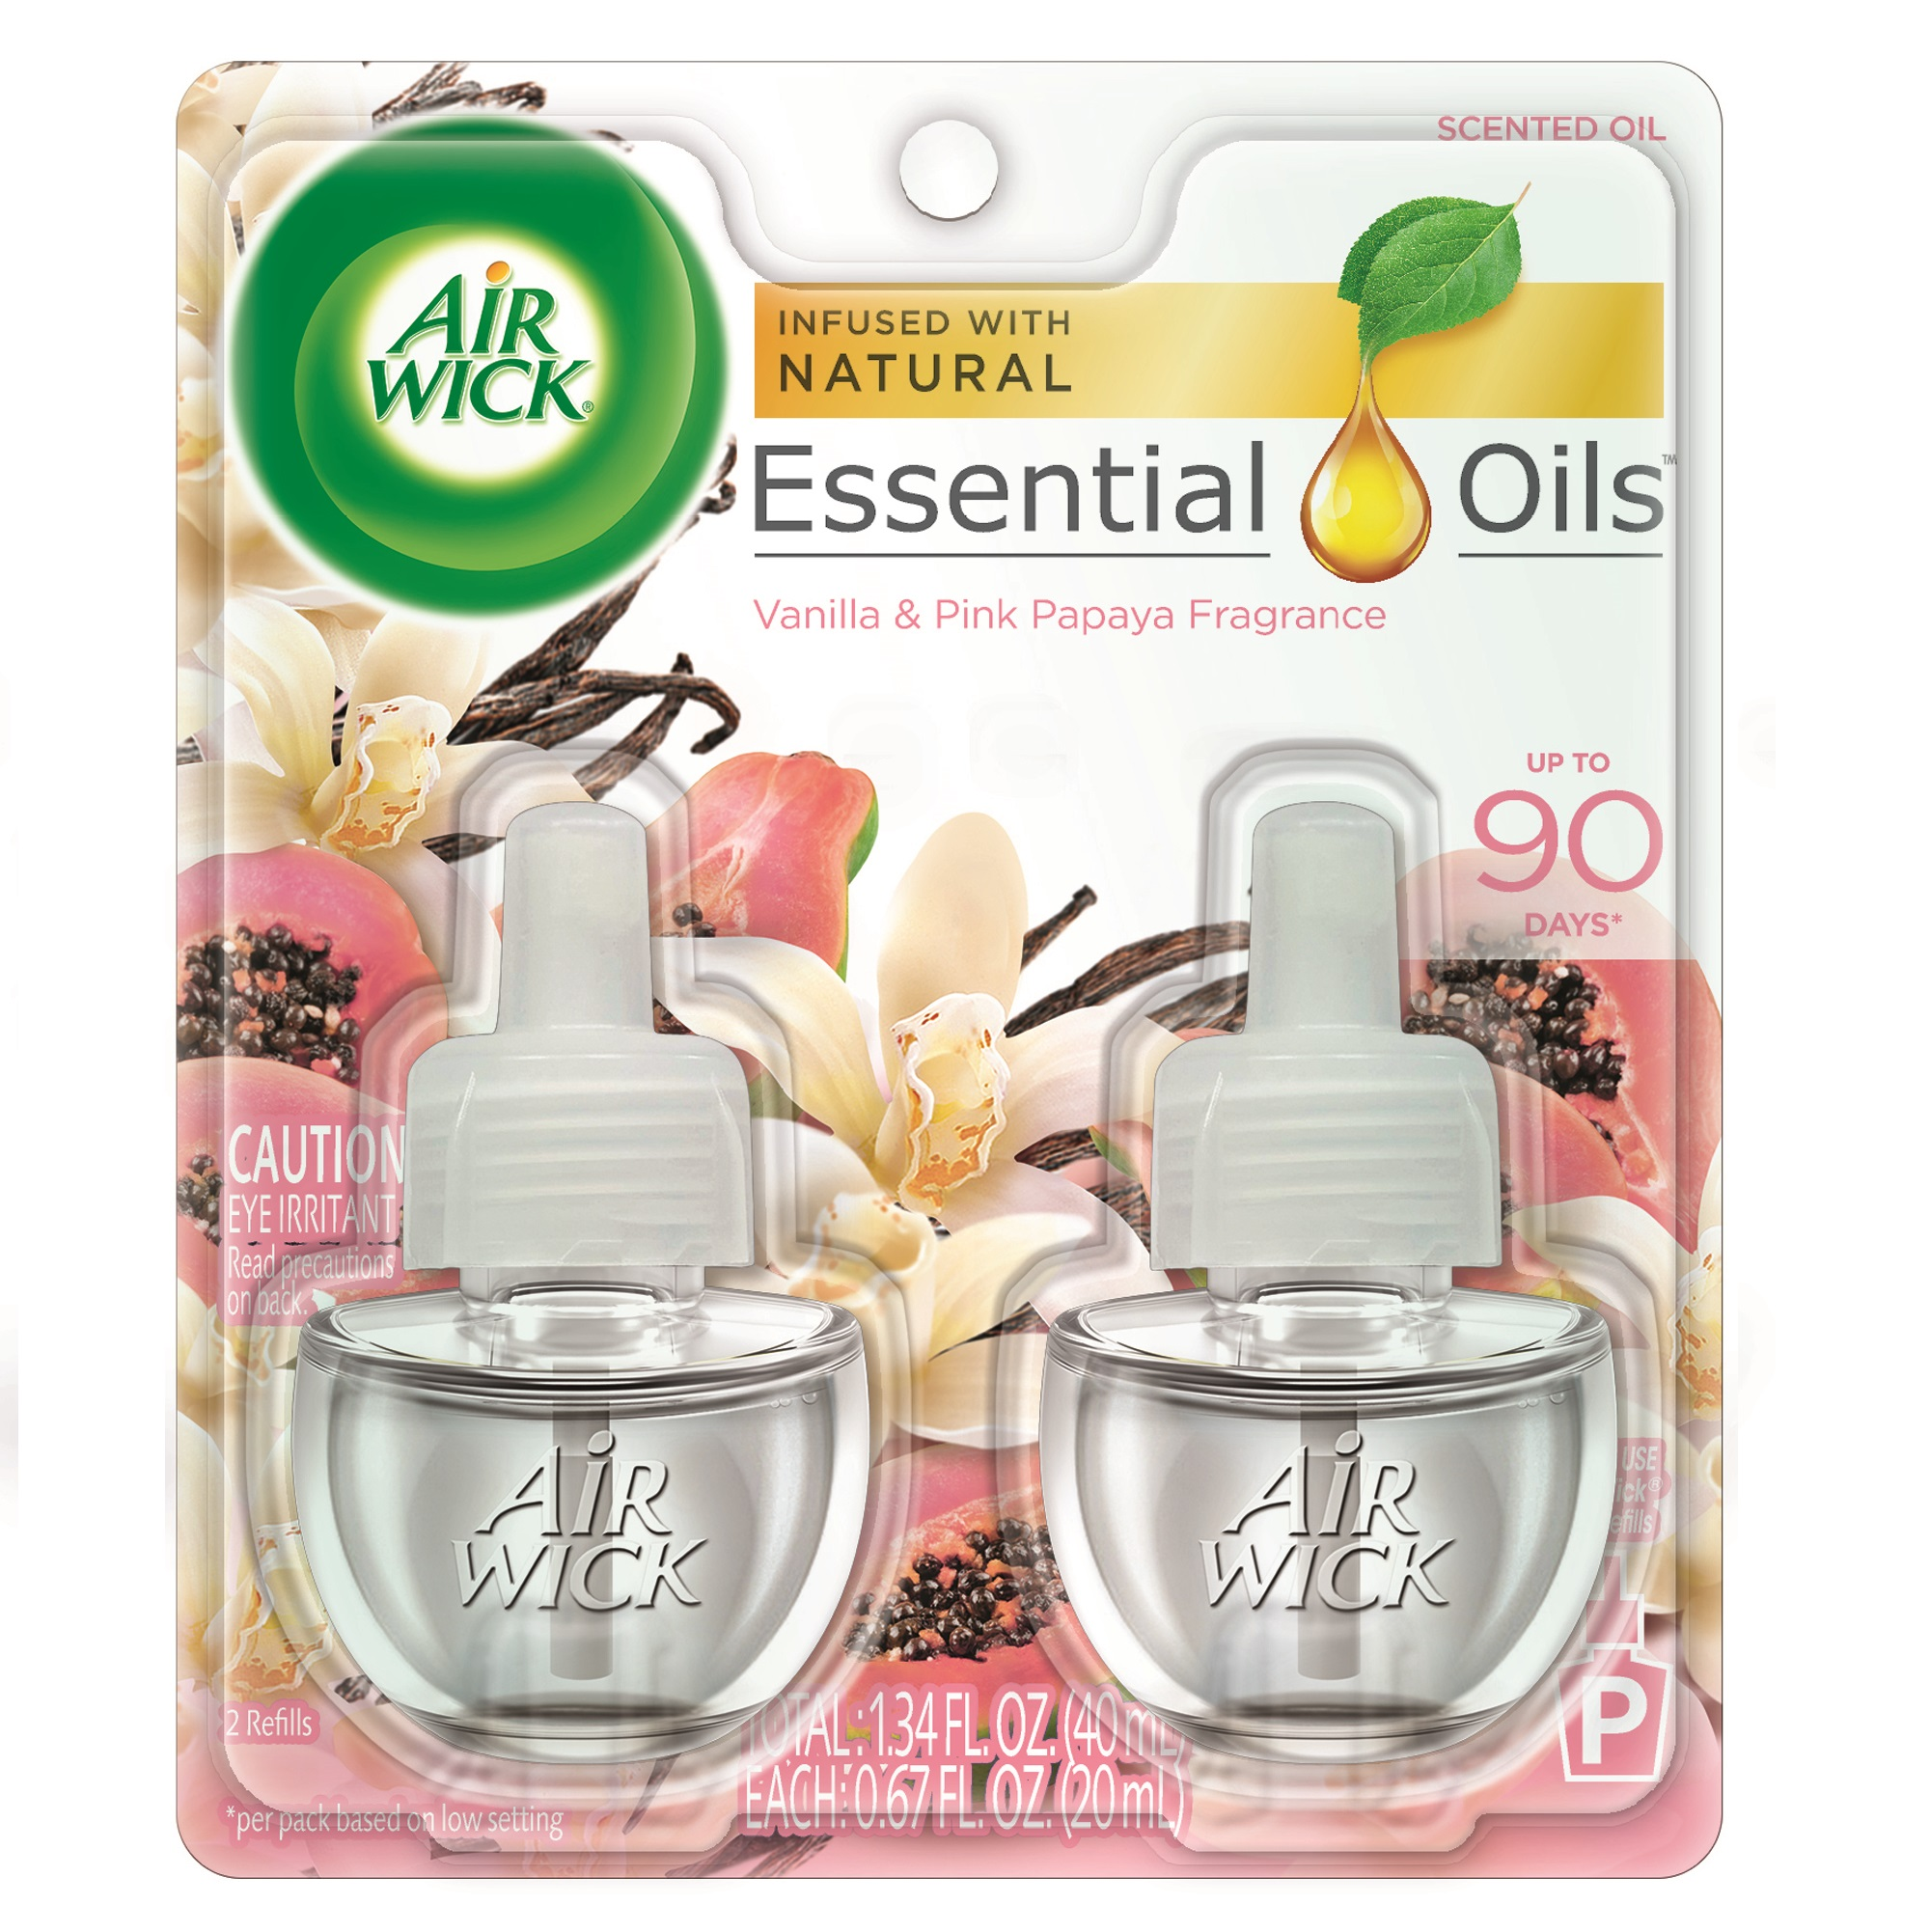 Air Wick Scented Oil 2 Refills, Vanilla & Pink Papaya, (2x0.67oz), Air Freshener